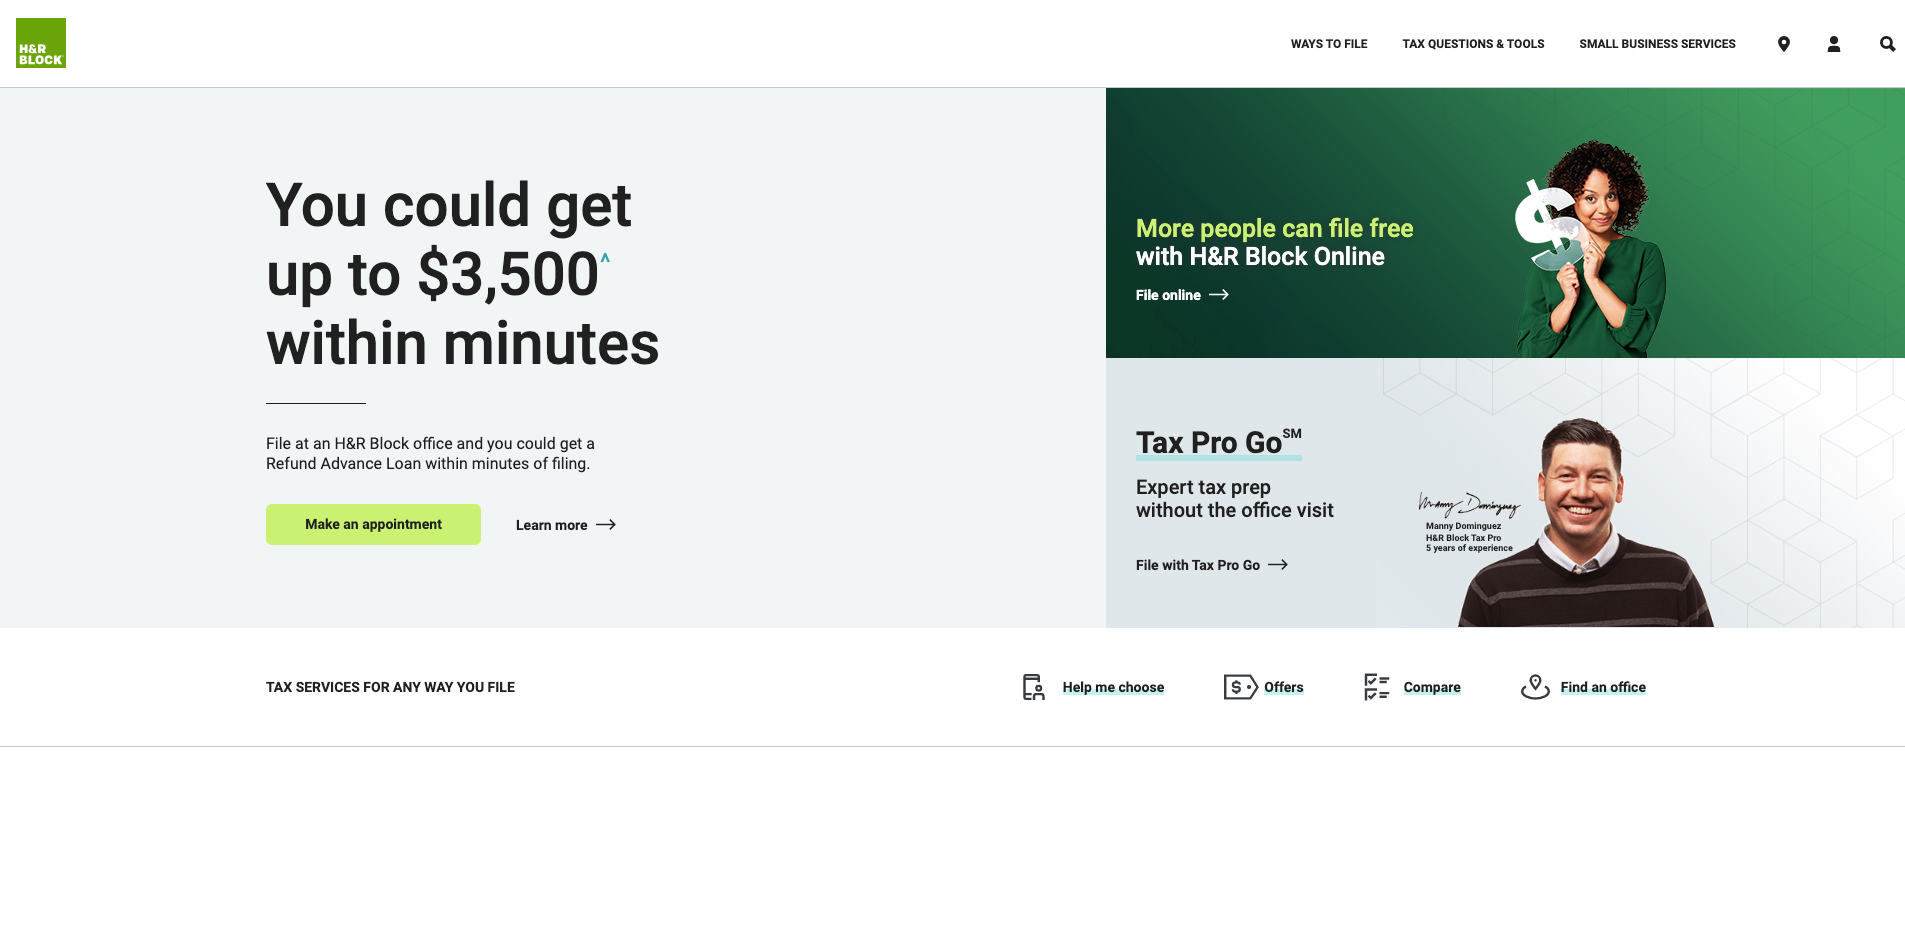 H_R Block website homepage screenshot